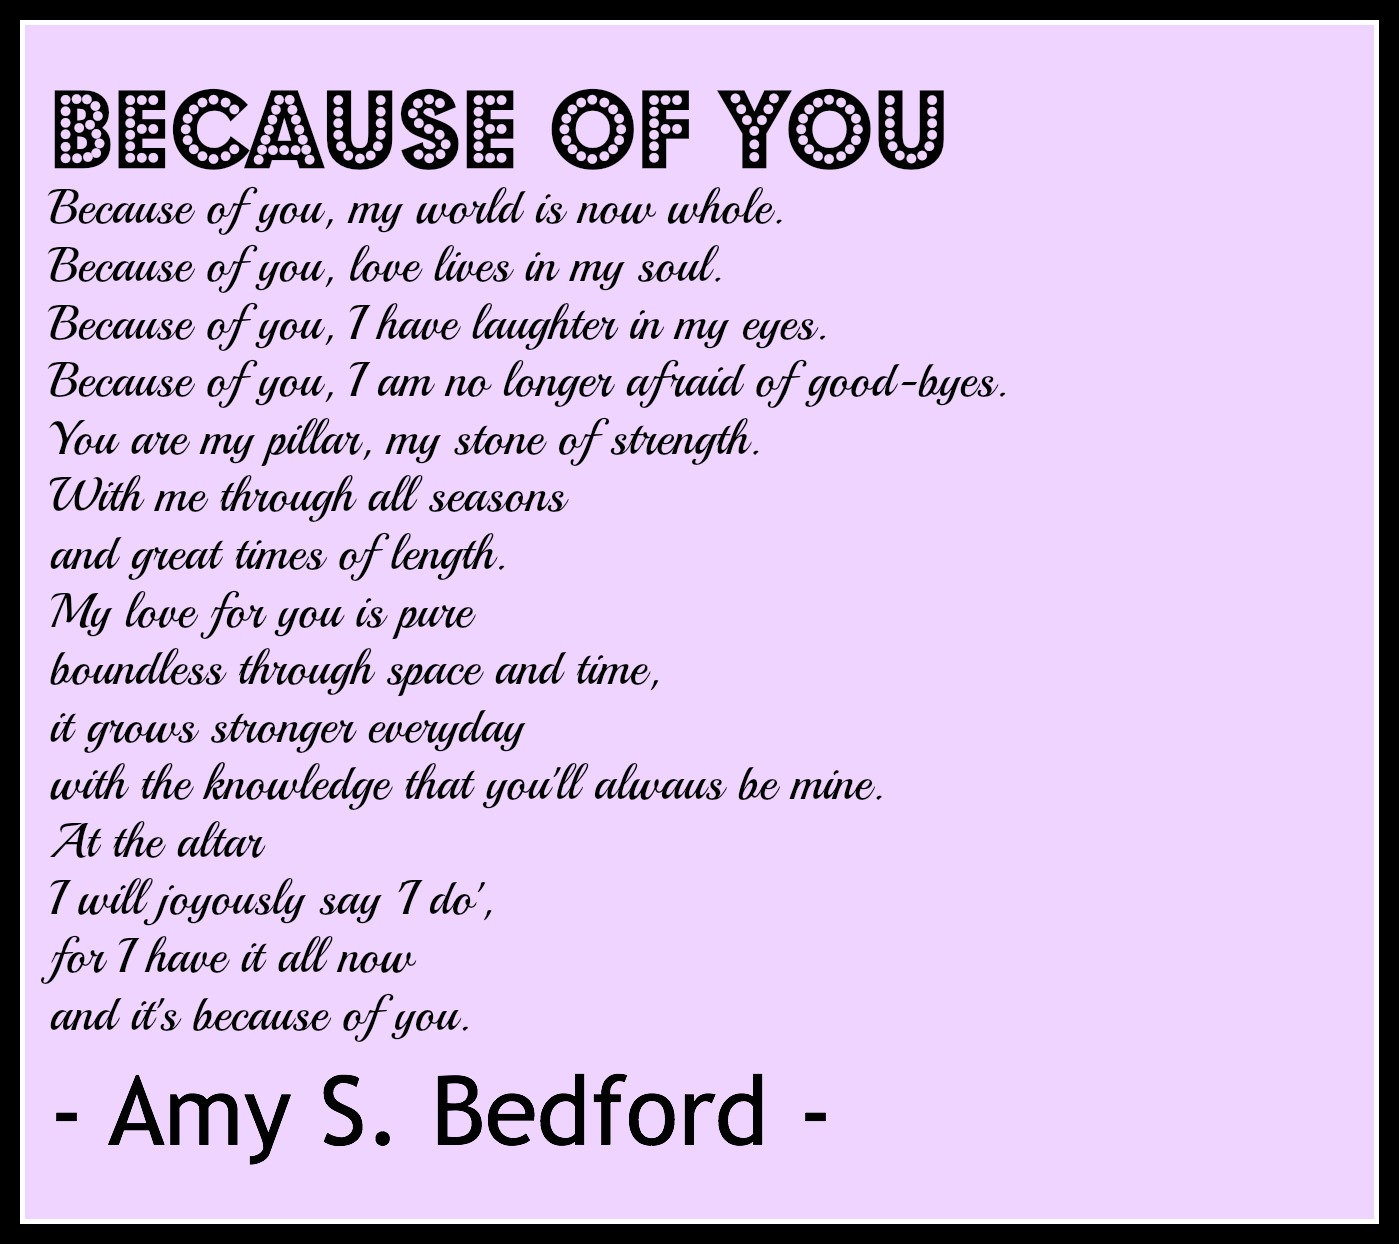 Because of You poem - Wedding Ceremony Readings